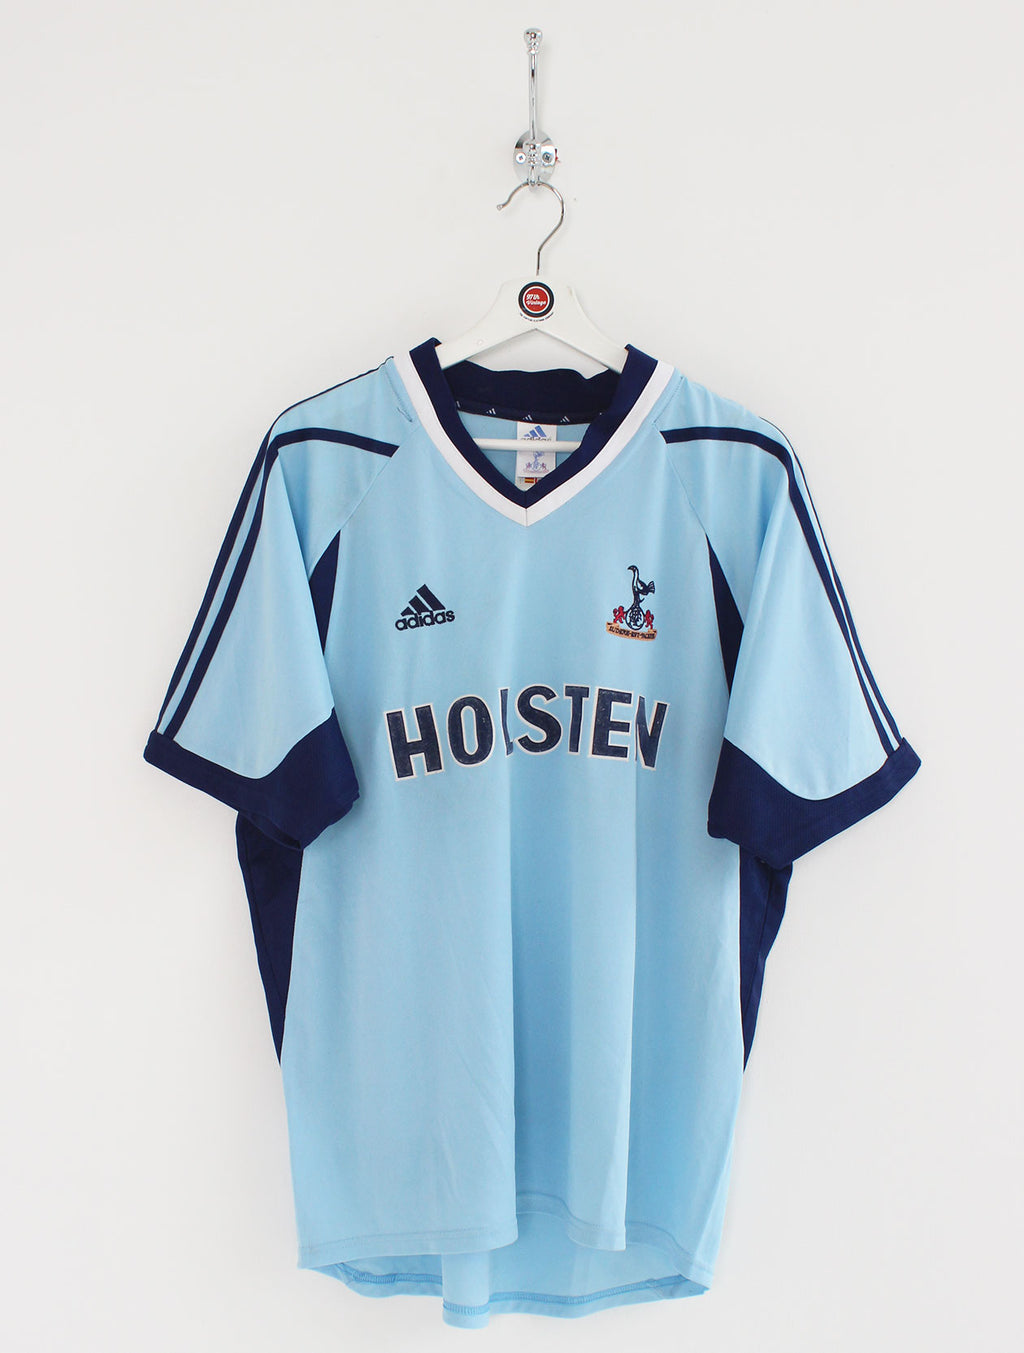 2001/02 Tottenham Hotspur Football Shirt (L)